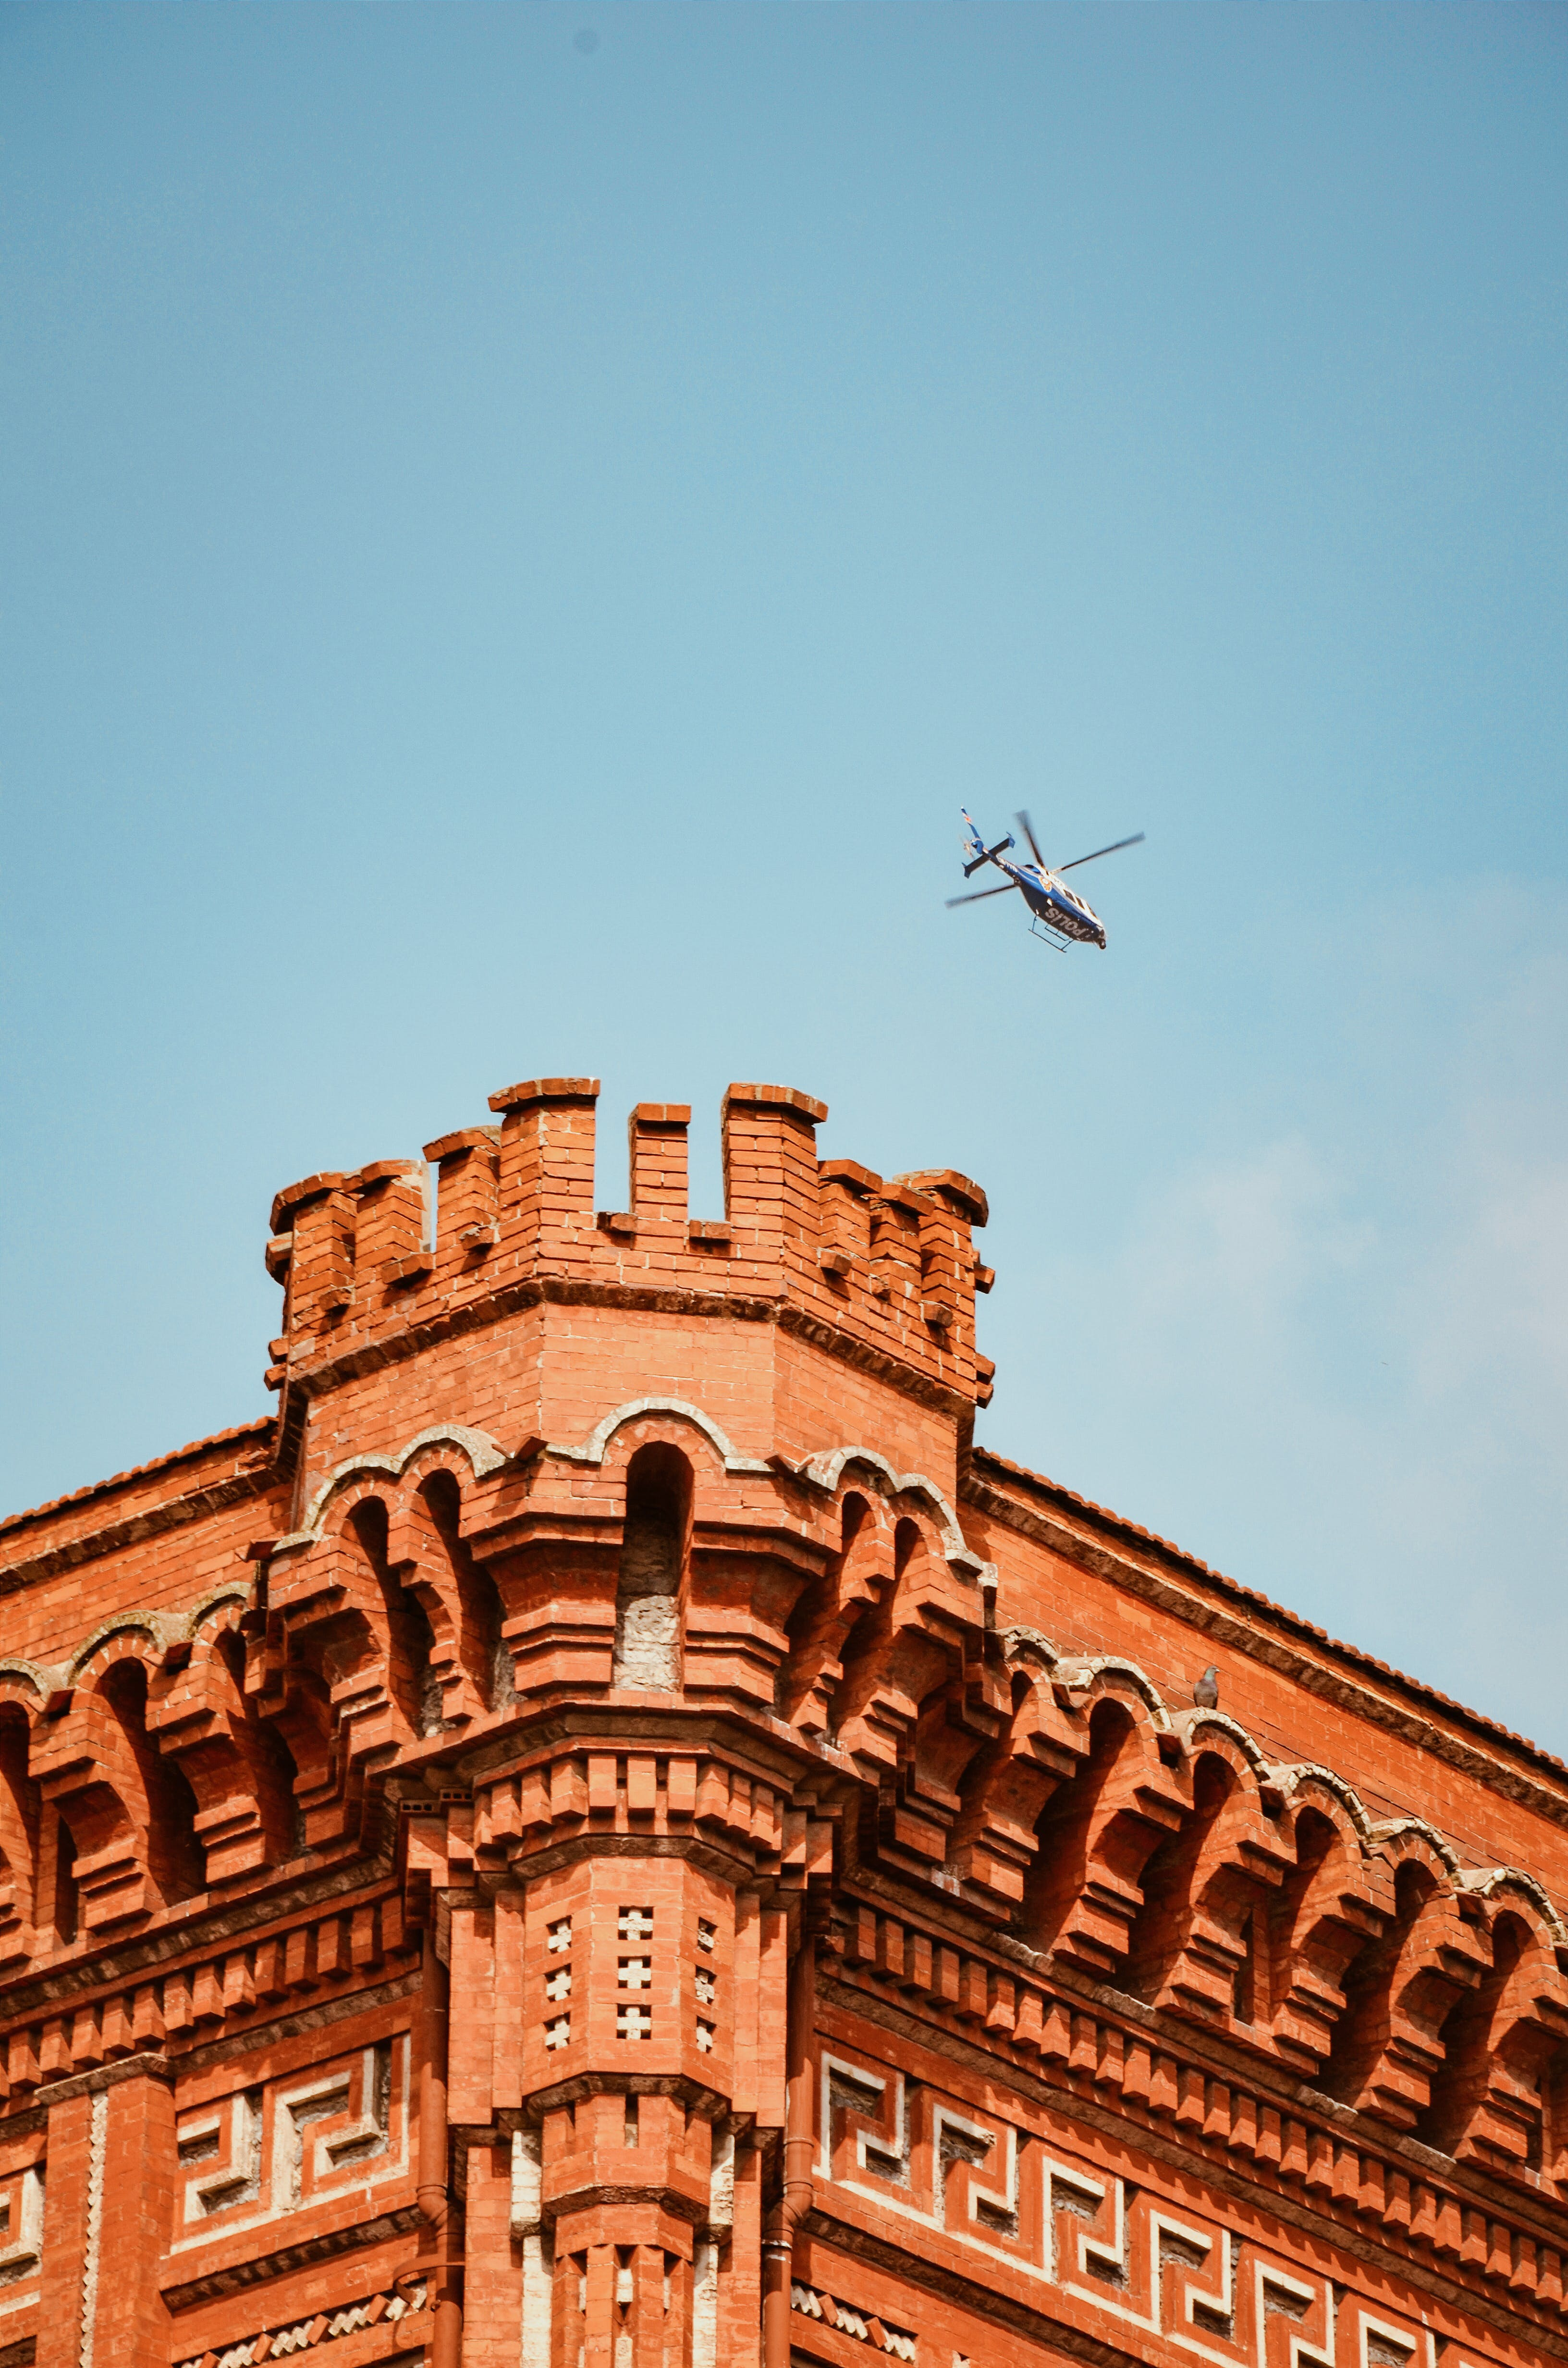 Helicopter Flying Over Brown Building With Turret